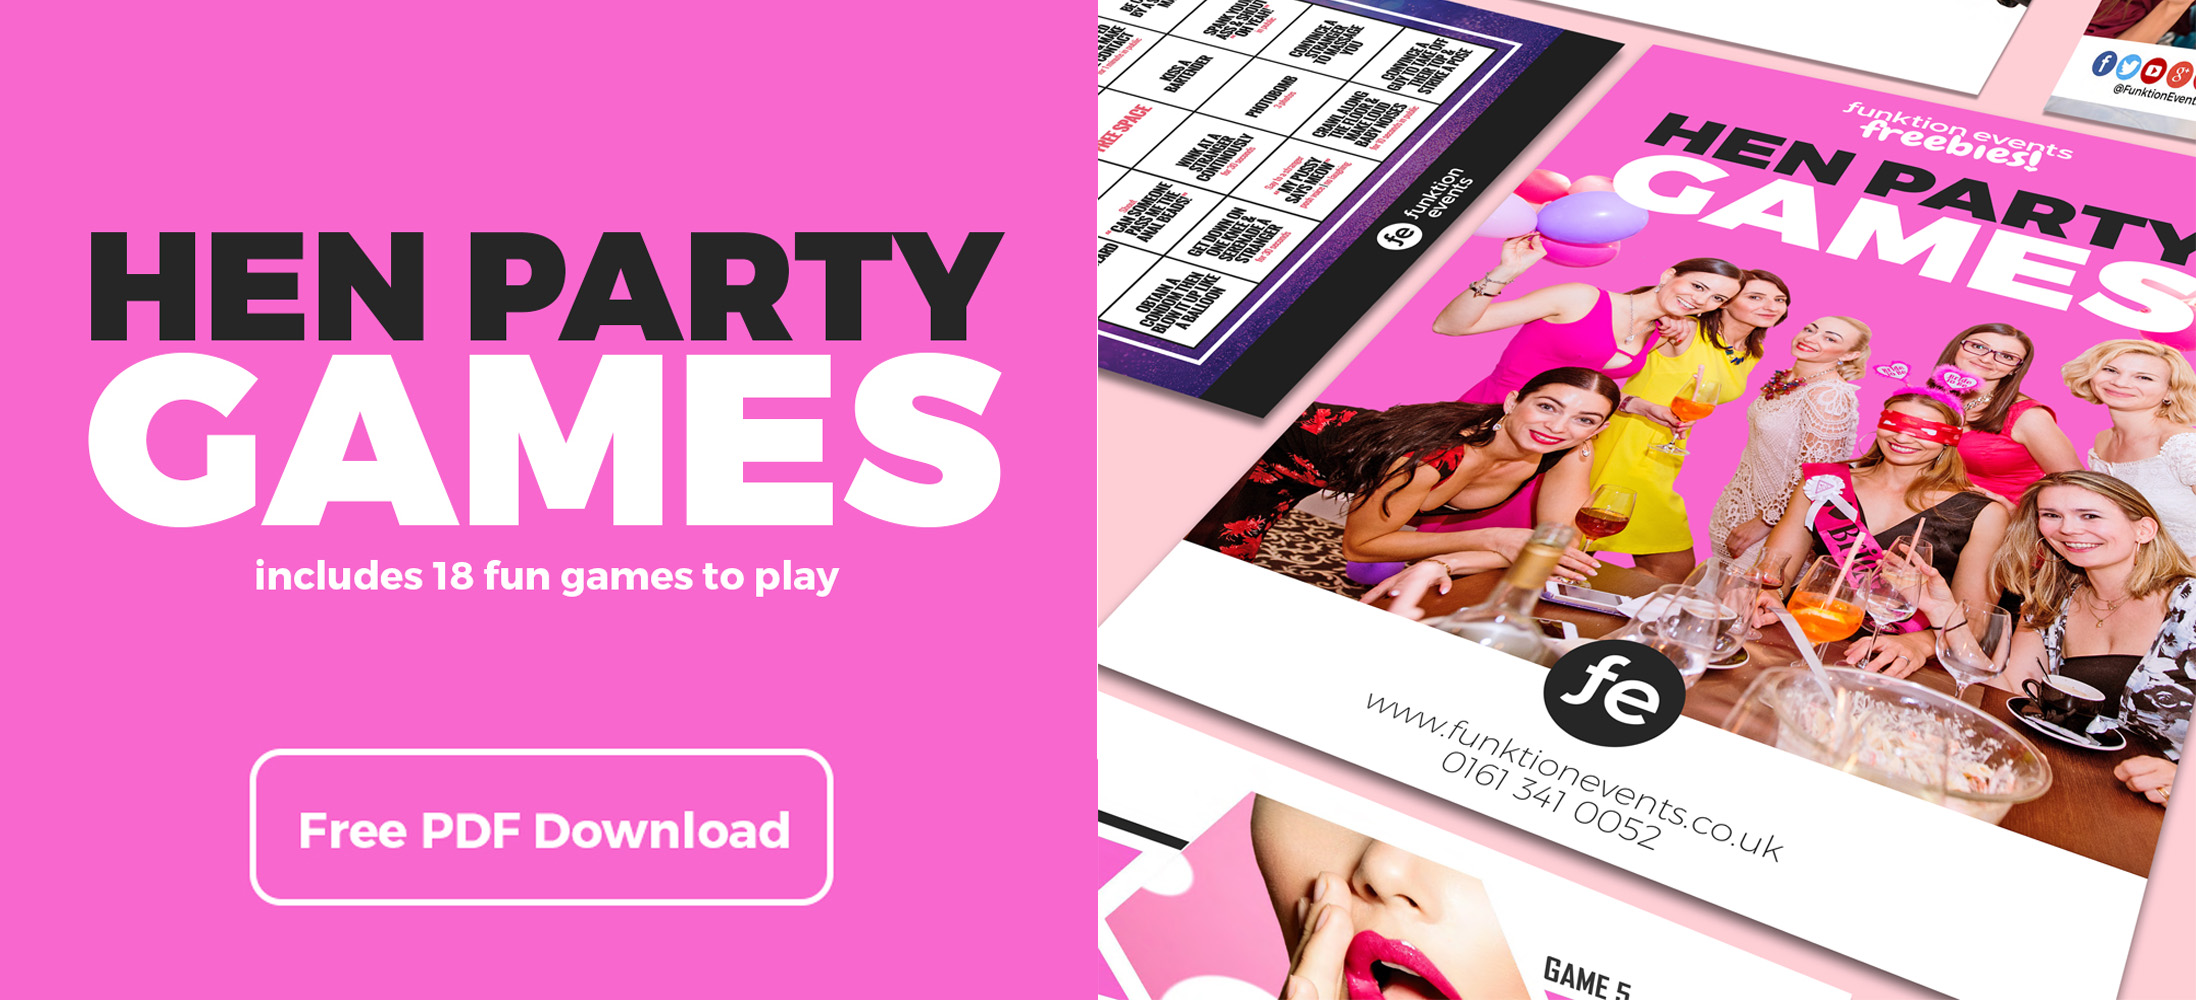 Hen Party Games